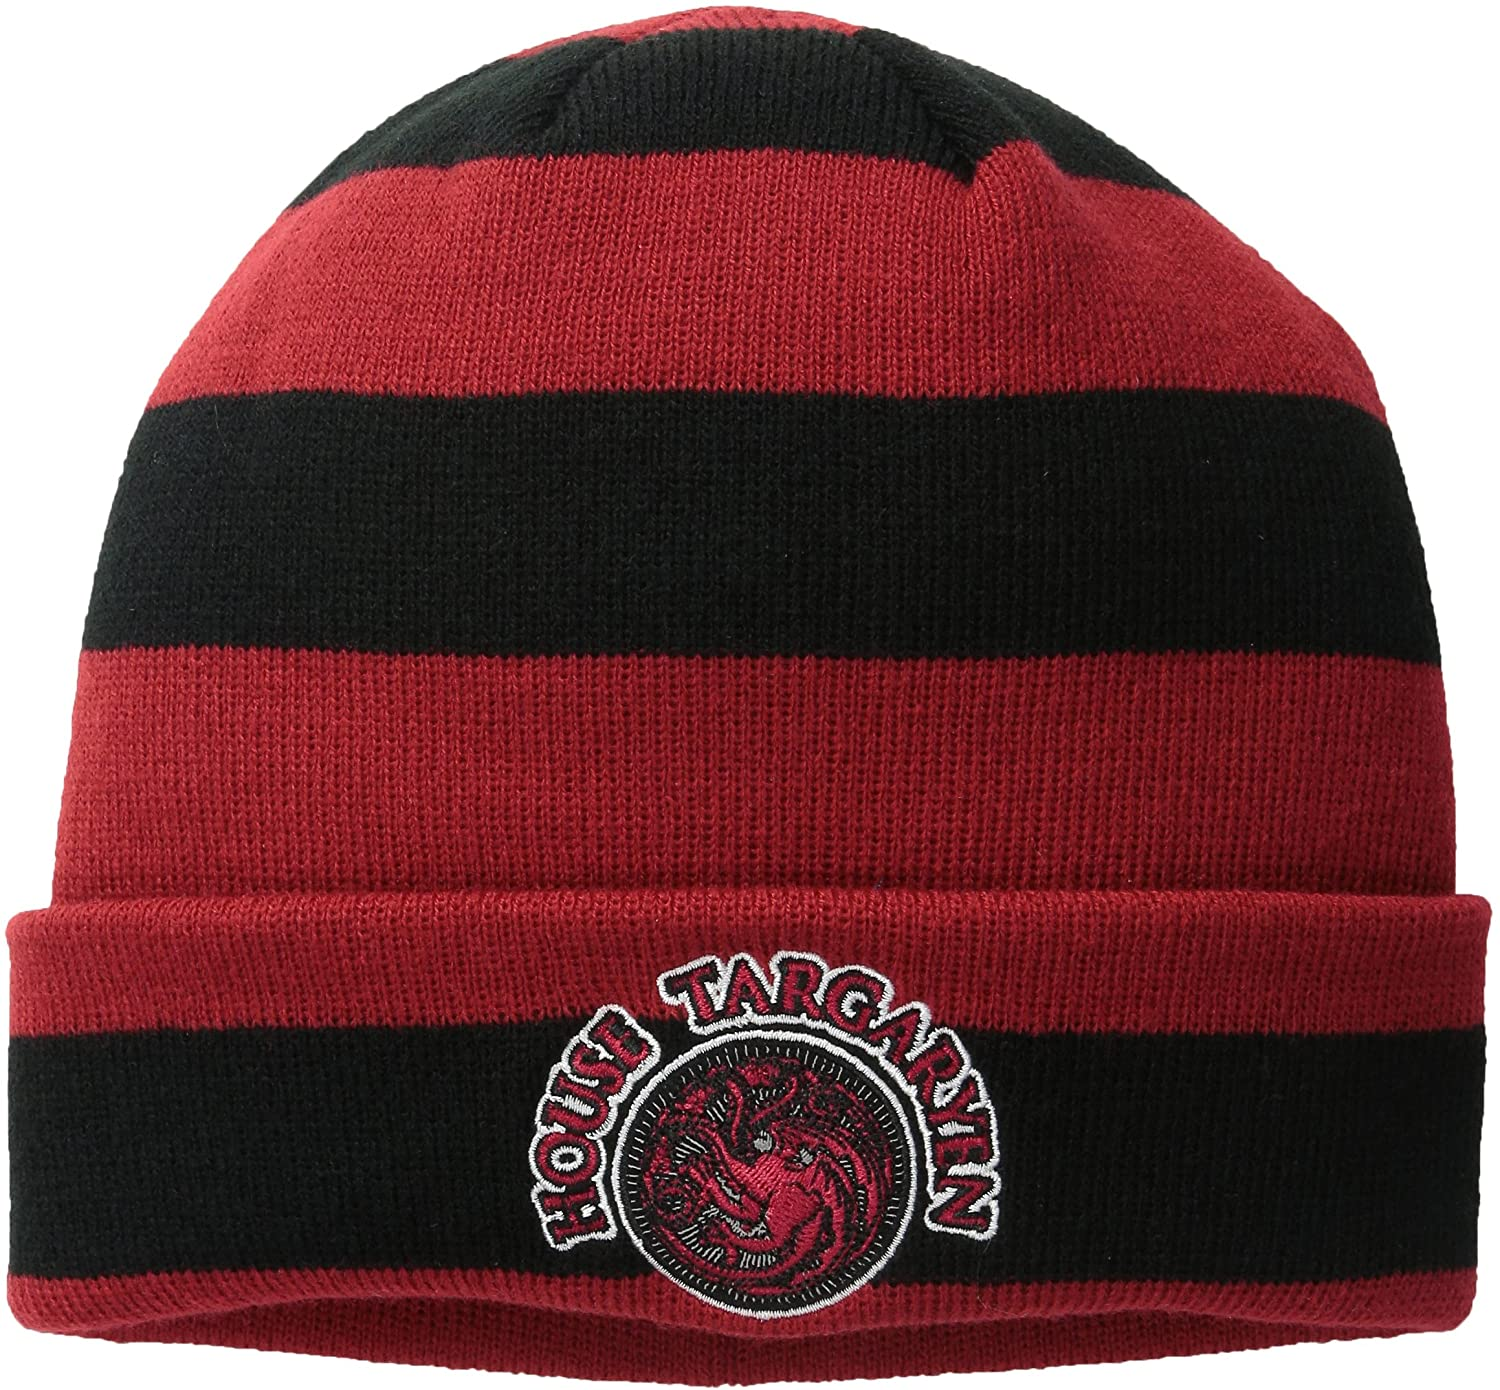 Game of Thrones Mens Striped Cuff Beanie with Targaryen Patch